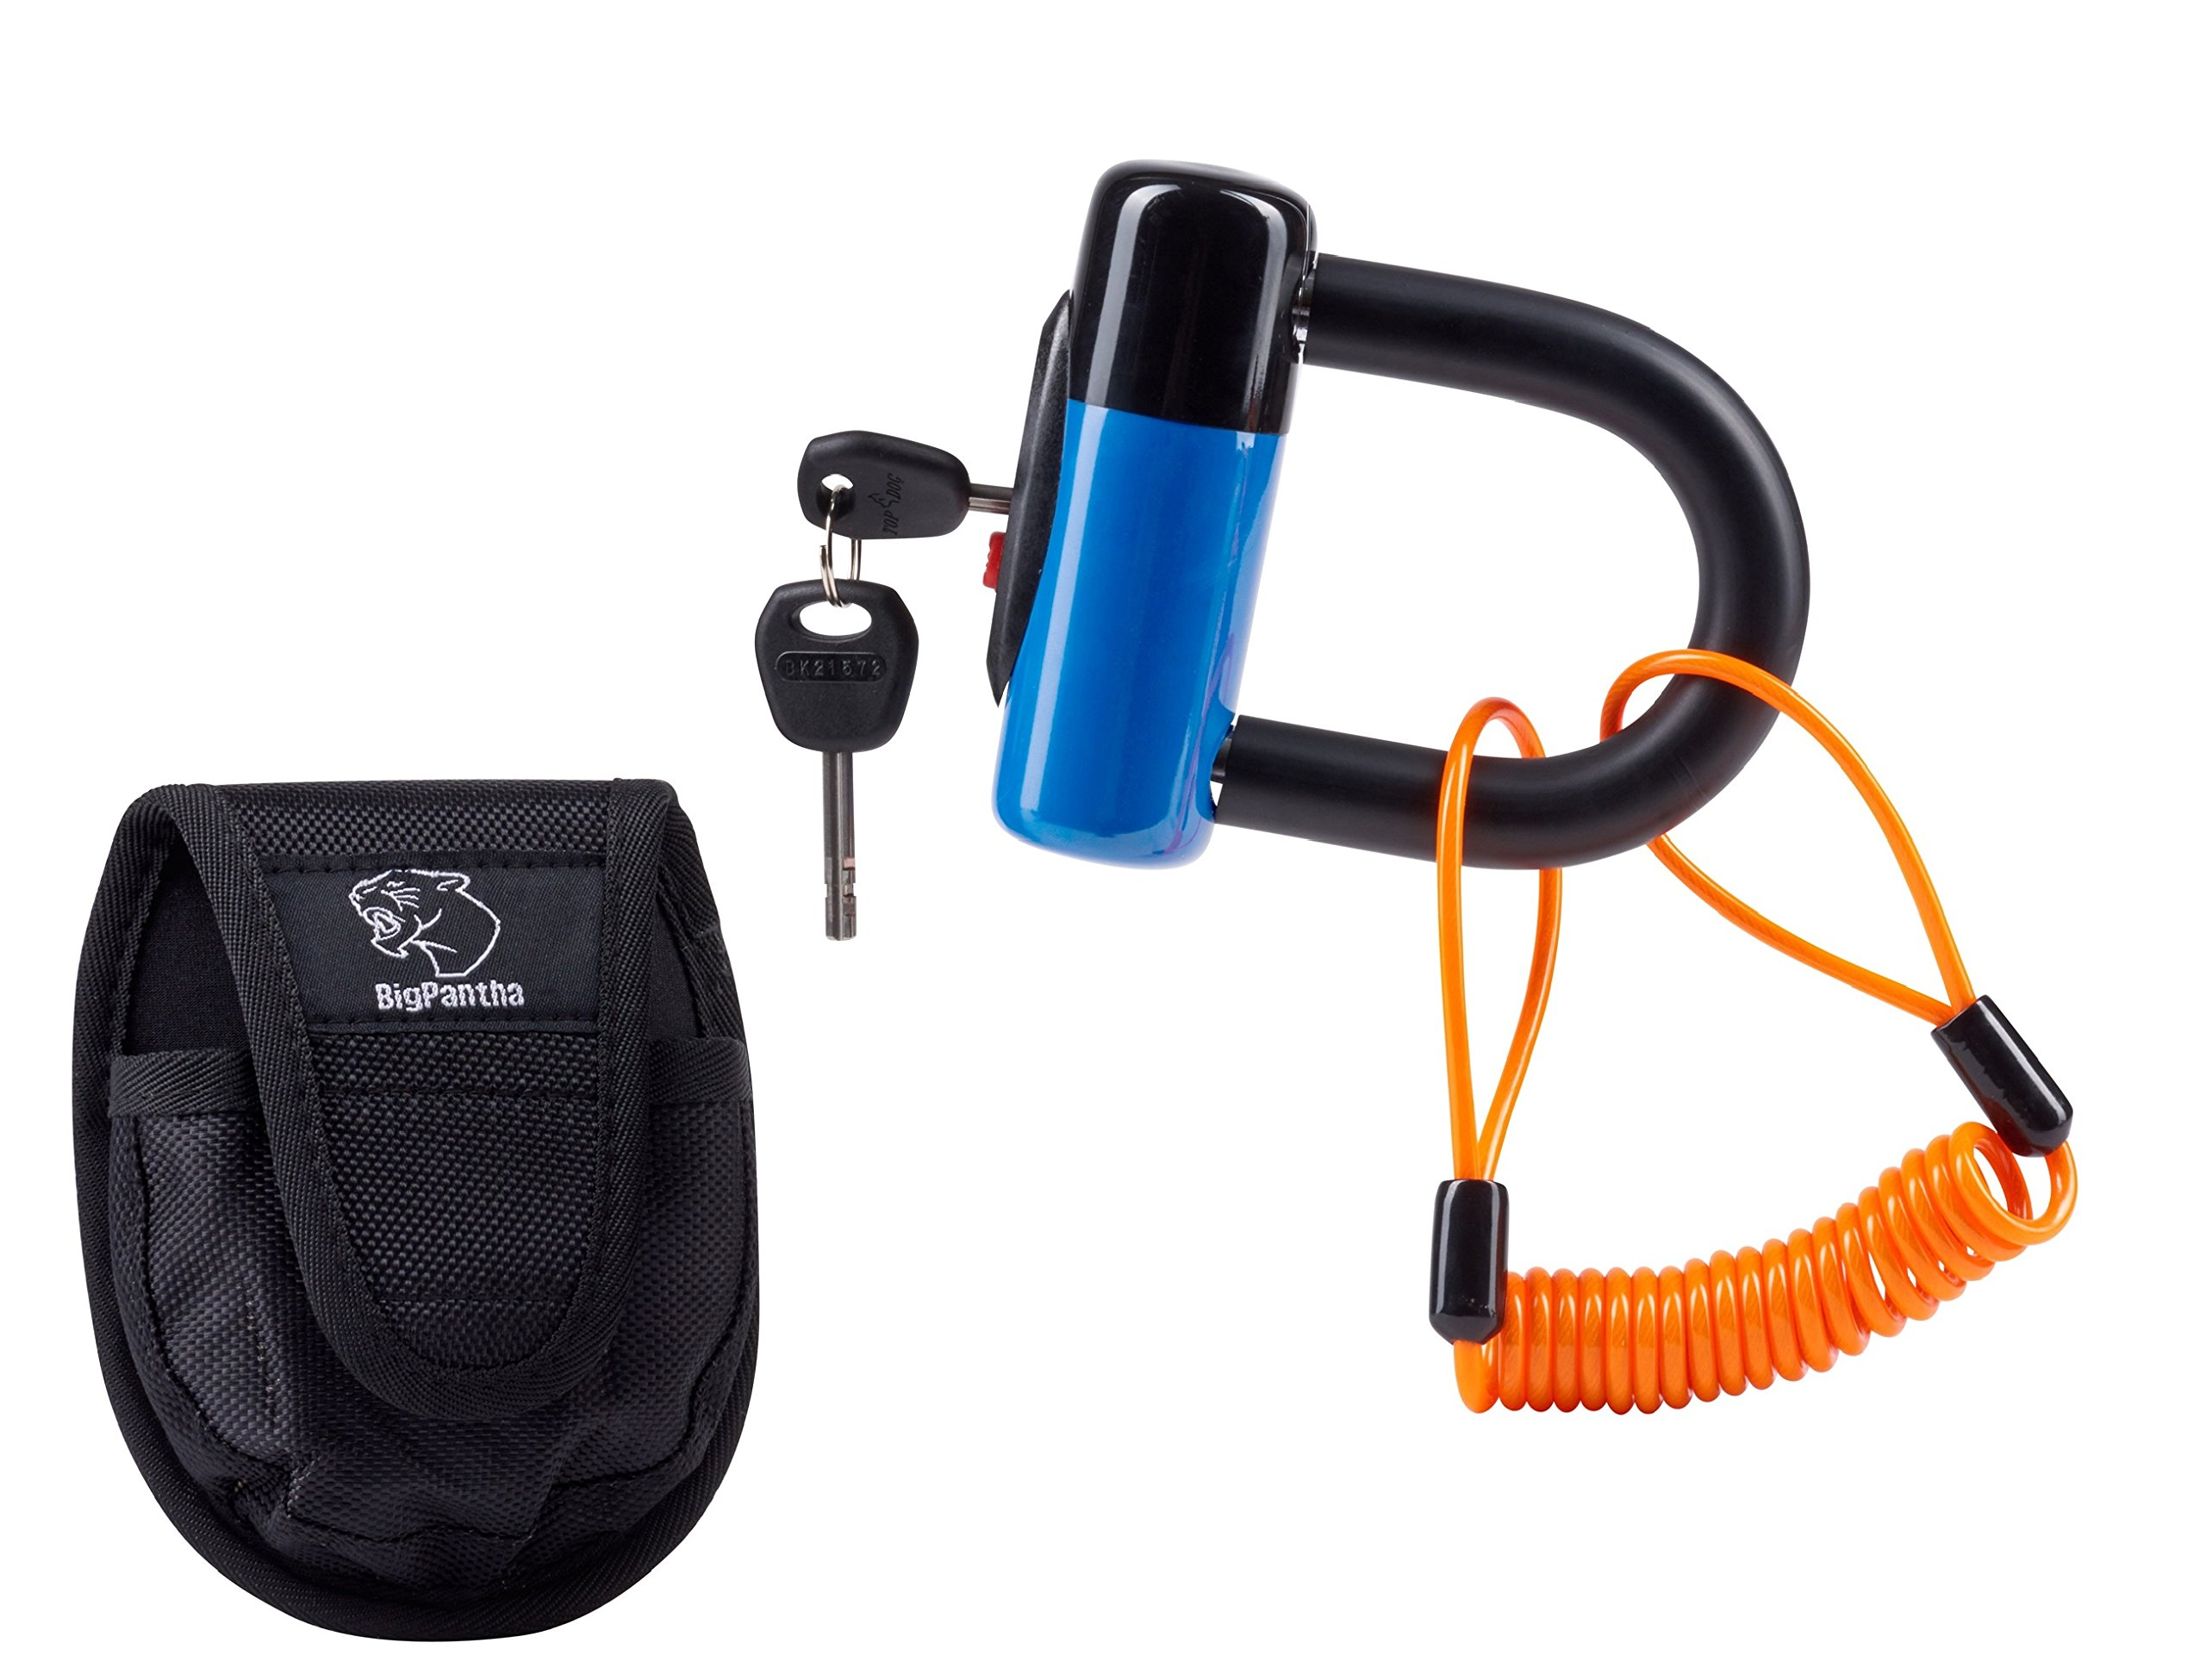 Universal Motorcycle Disc Brake Lock (U-Lock Bike Lock Model). RELAX Your Motorbike is Very Safe Using This Device! Includes Highly Visible Reminder Cable & Holster. From BigPantha (Blue Version).